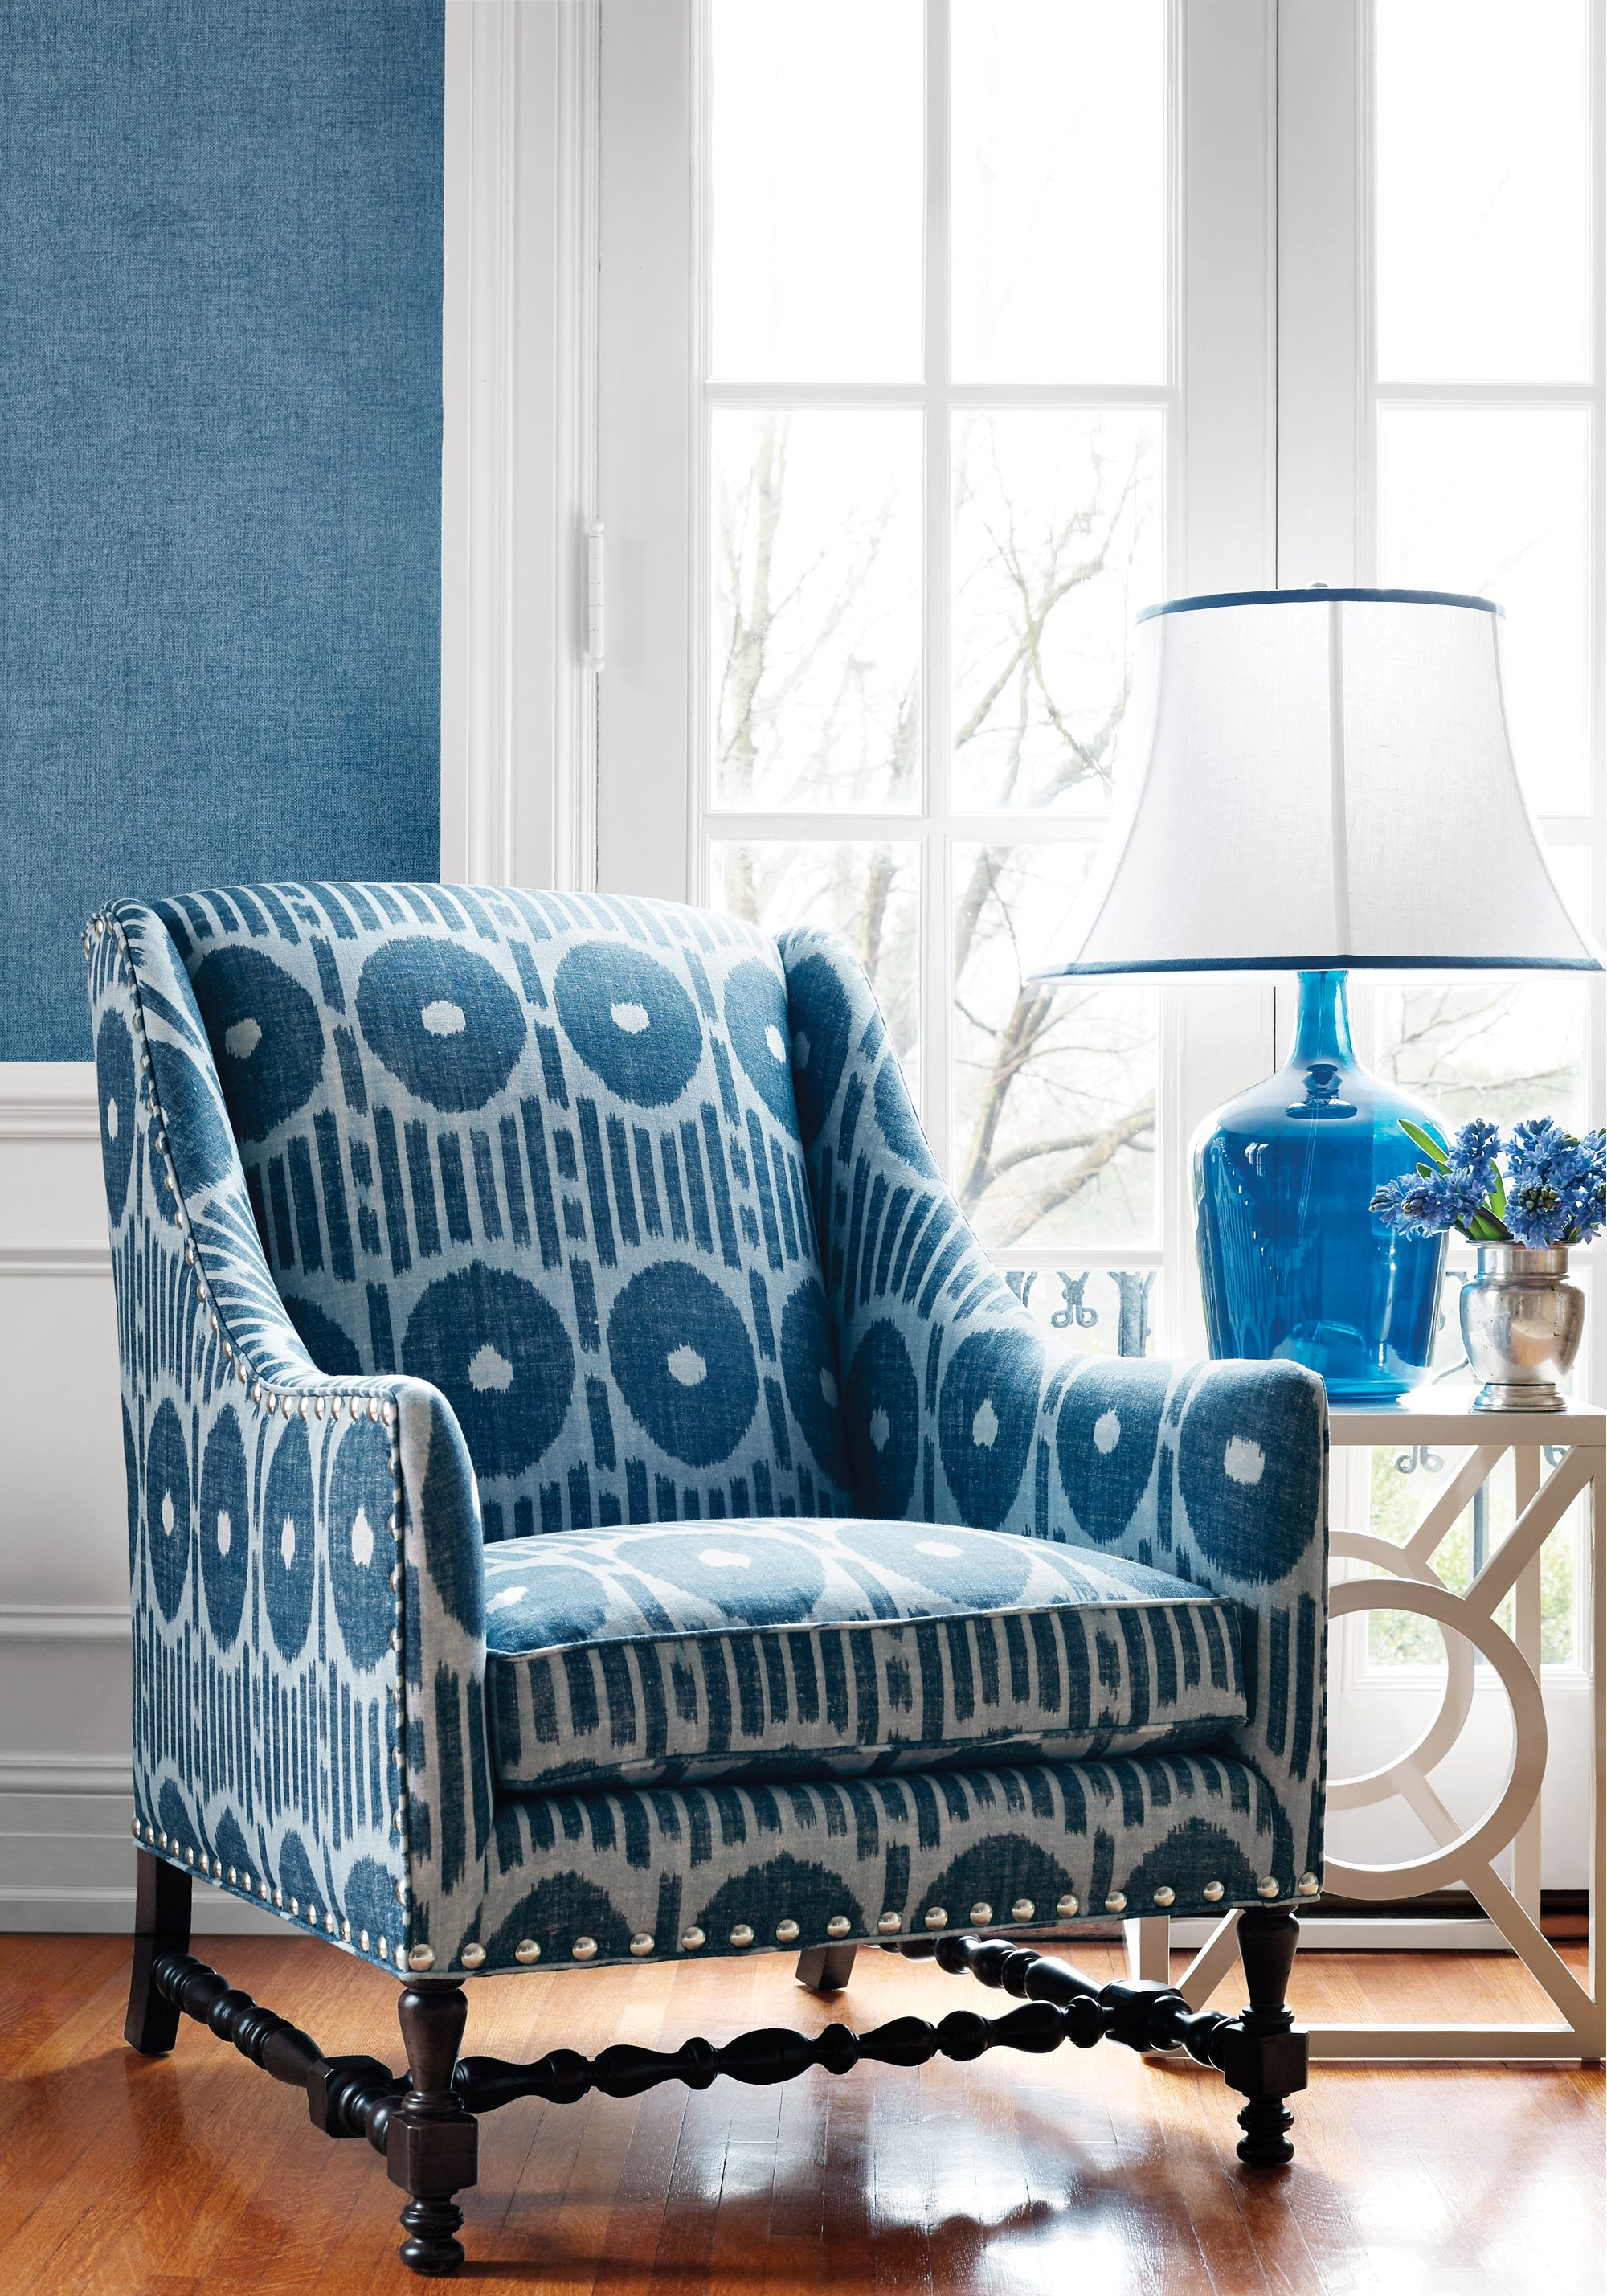 Exceptionnel Mesa Ikat Fabric   A 100% Linen Fabric Printed With A Graphic Ikat Design  Of Circles And Stripes, Shown In Navy Blue.